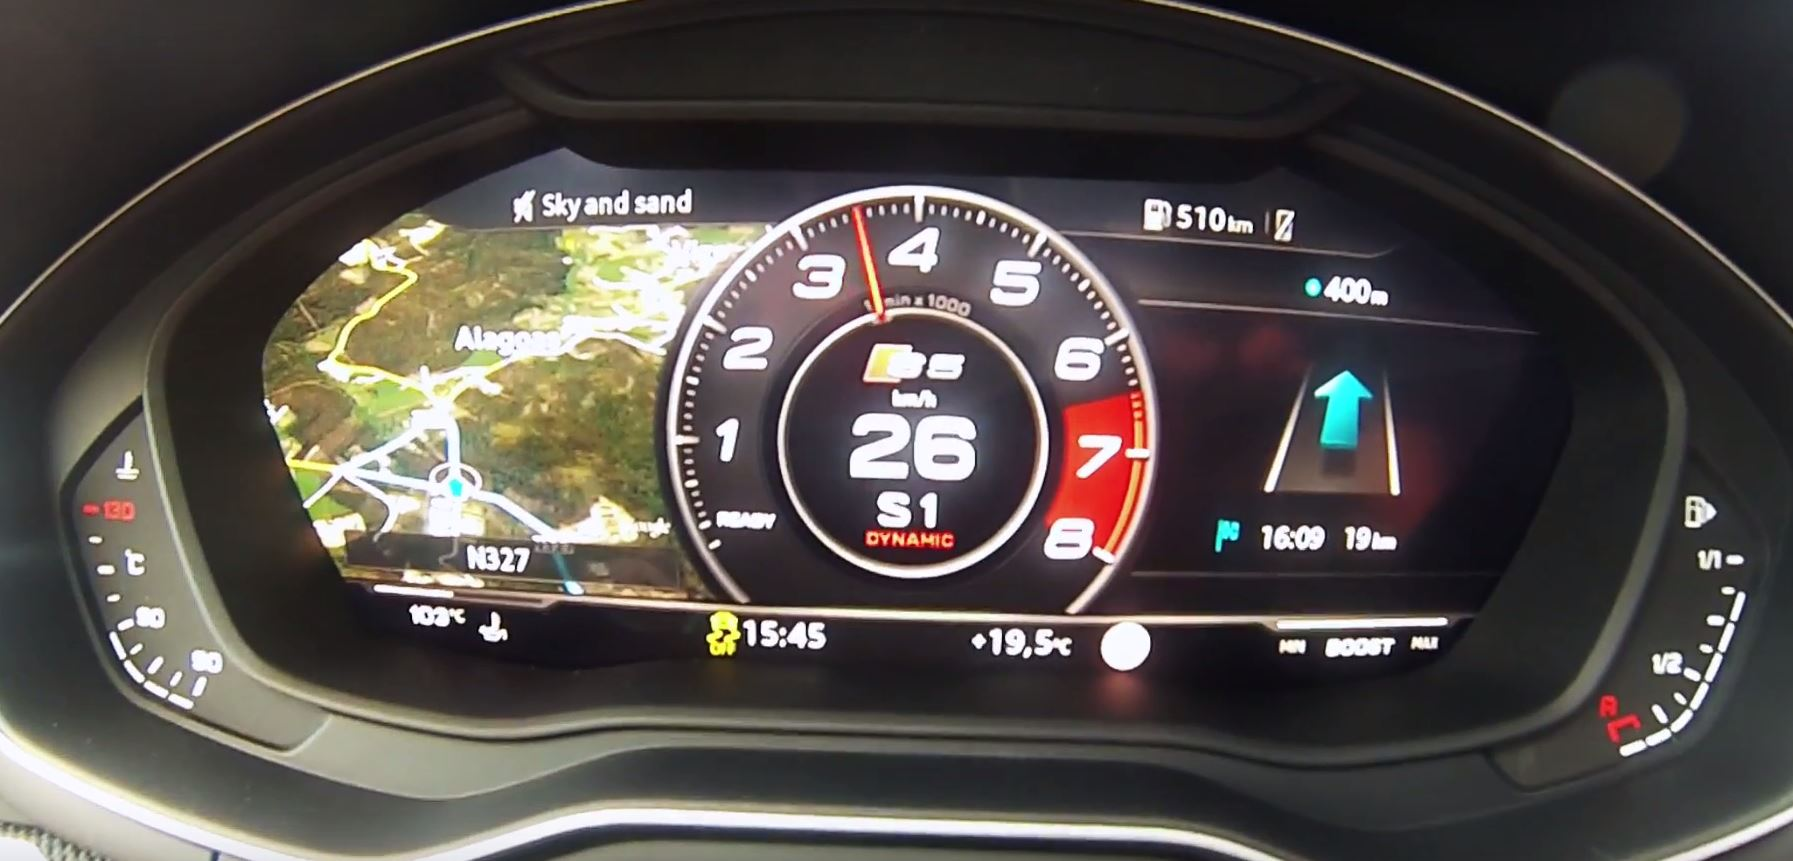 2017 Audi S5 Coupe And S4 Sedan Subjected To Acceleration Test